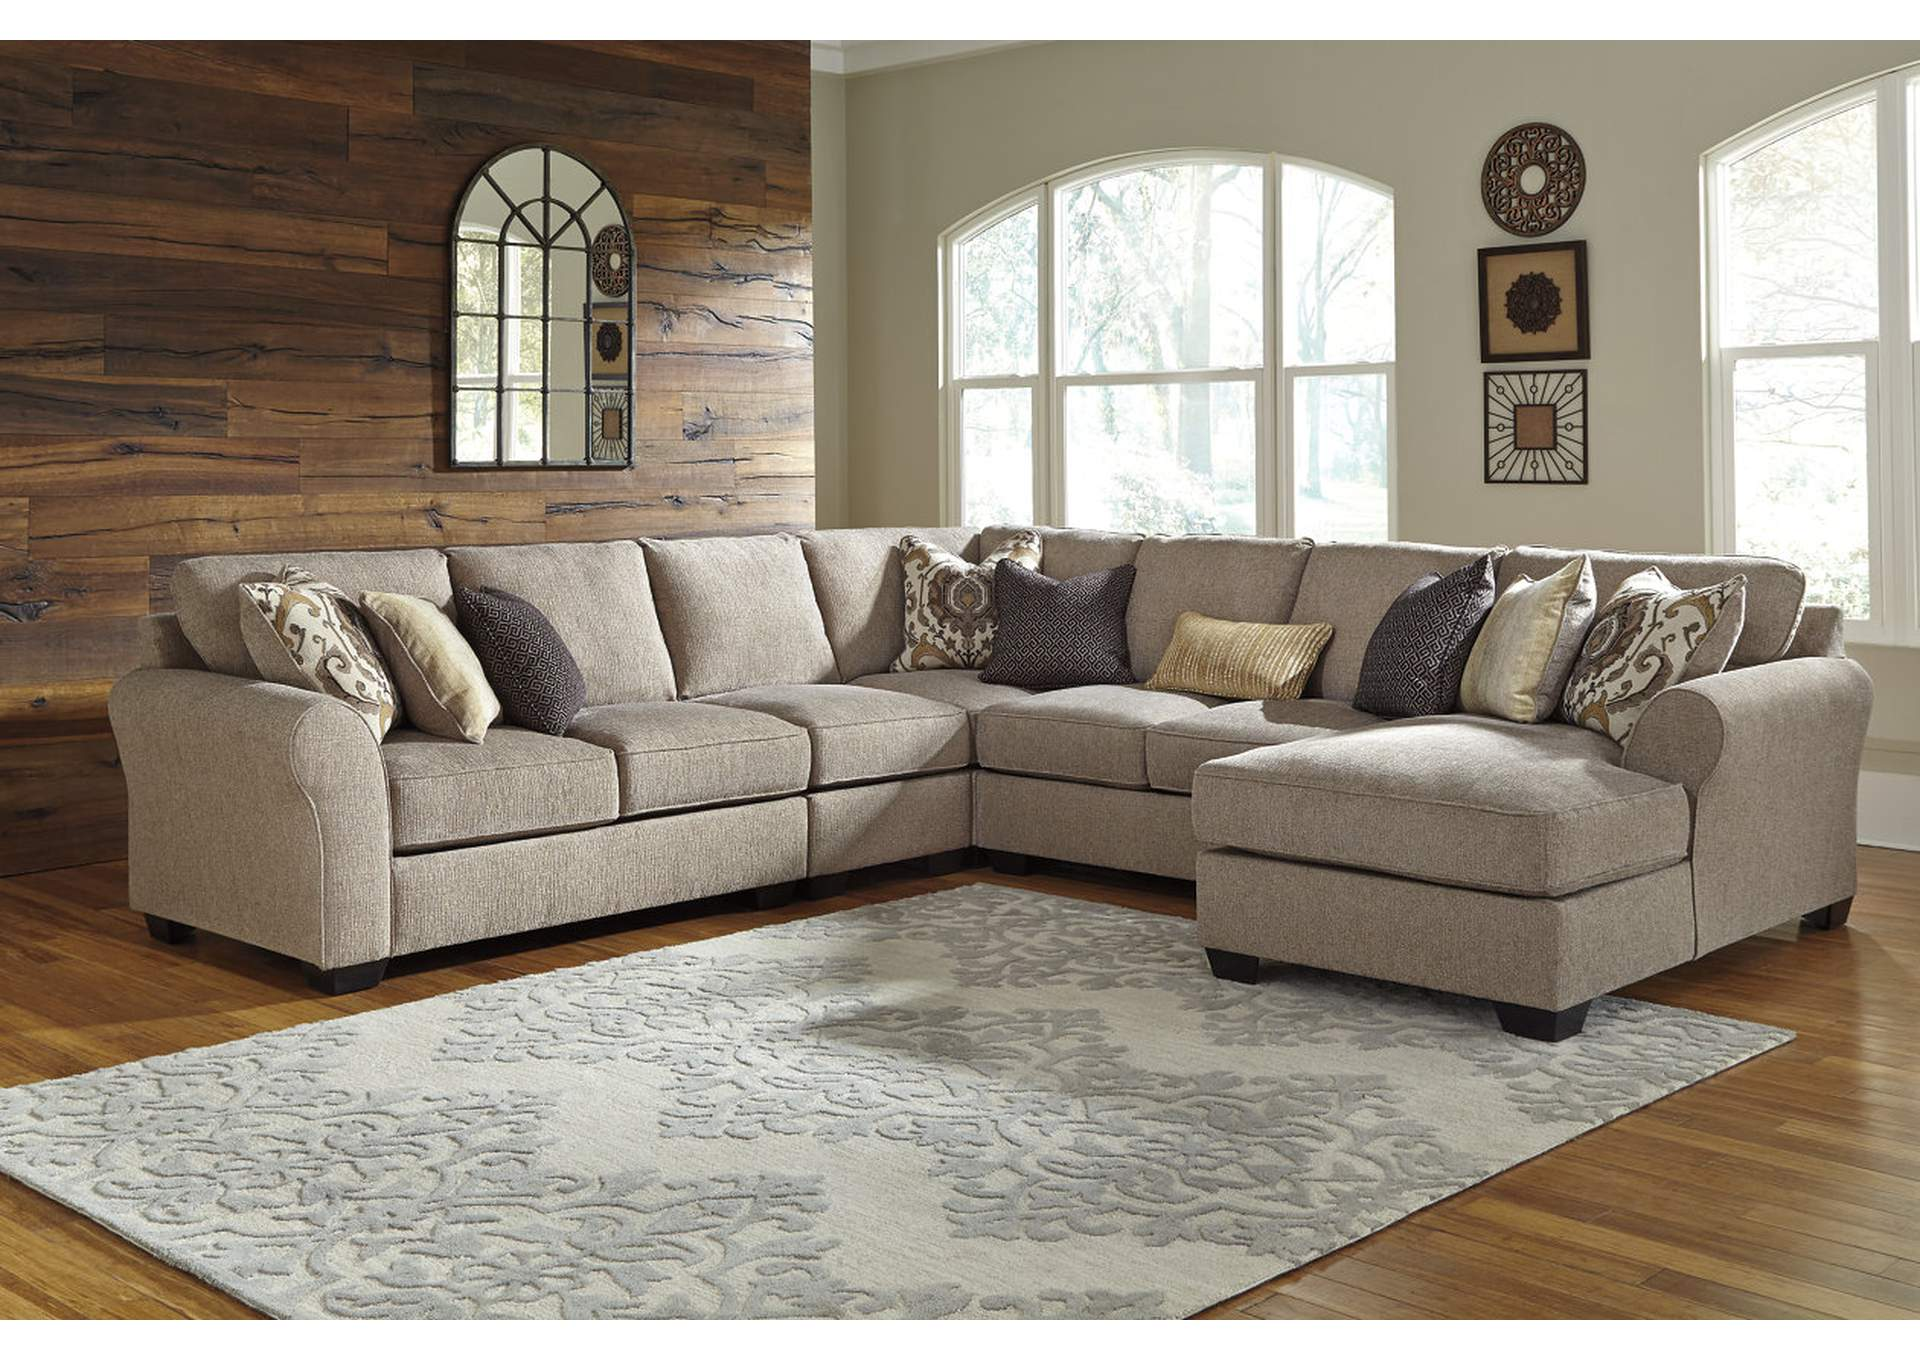 Pantomine Driftwood 5 Piece RAF Chaise Sectional,Benchcraft